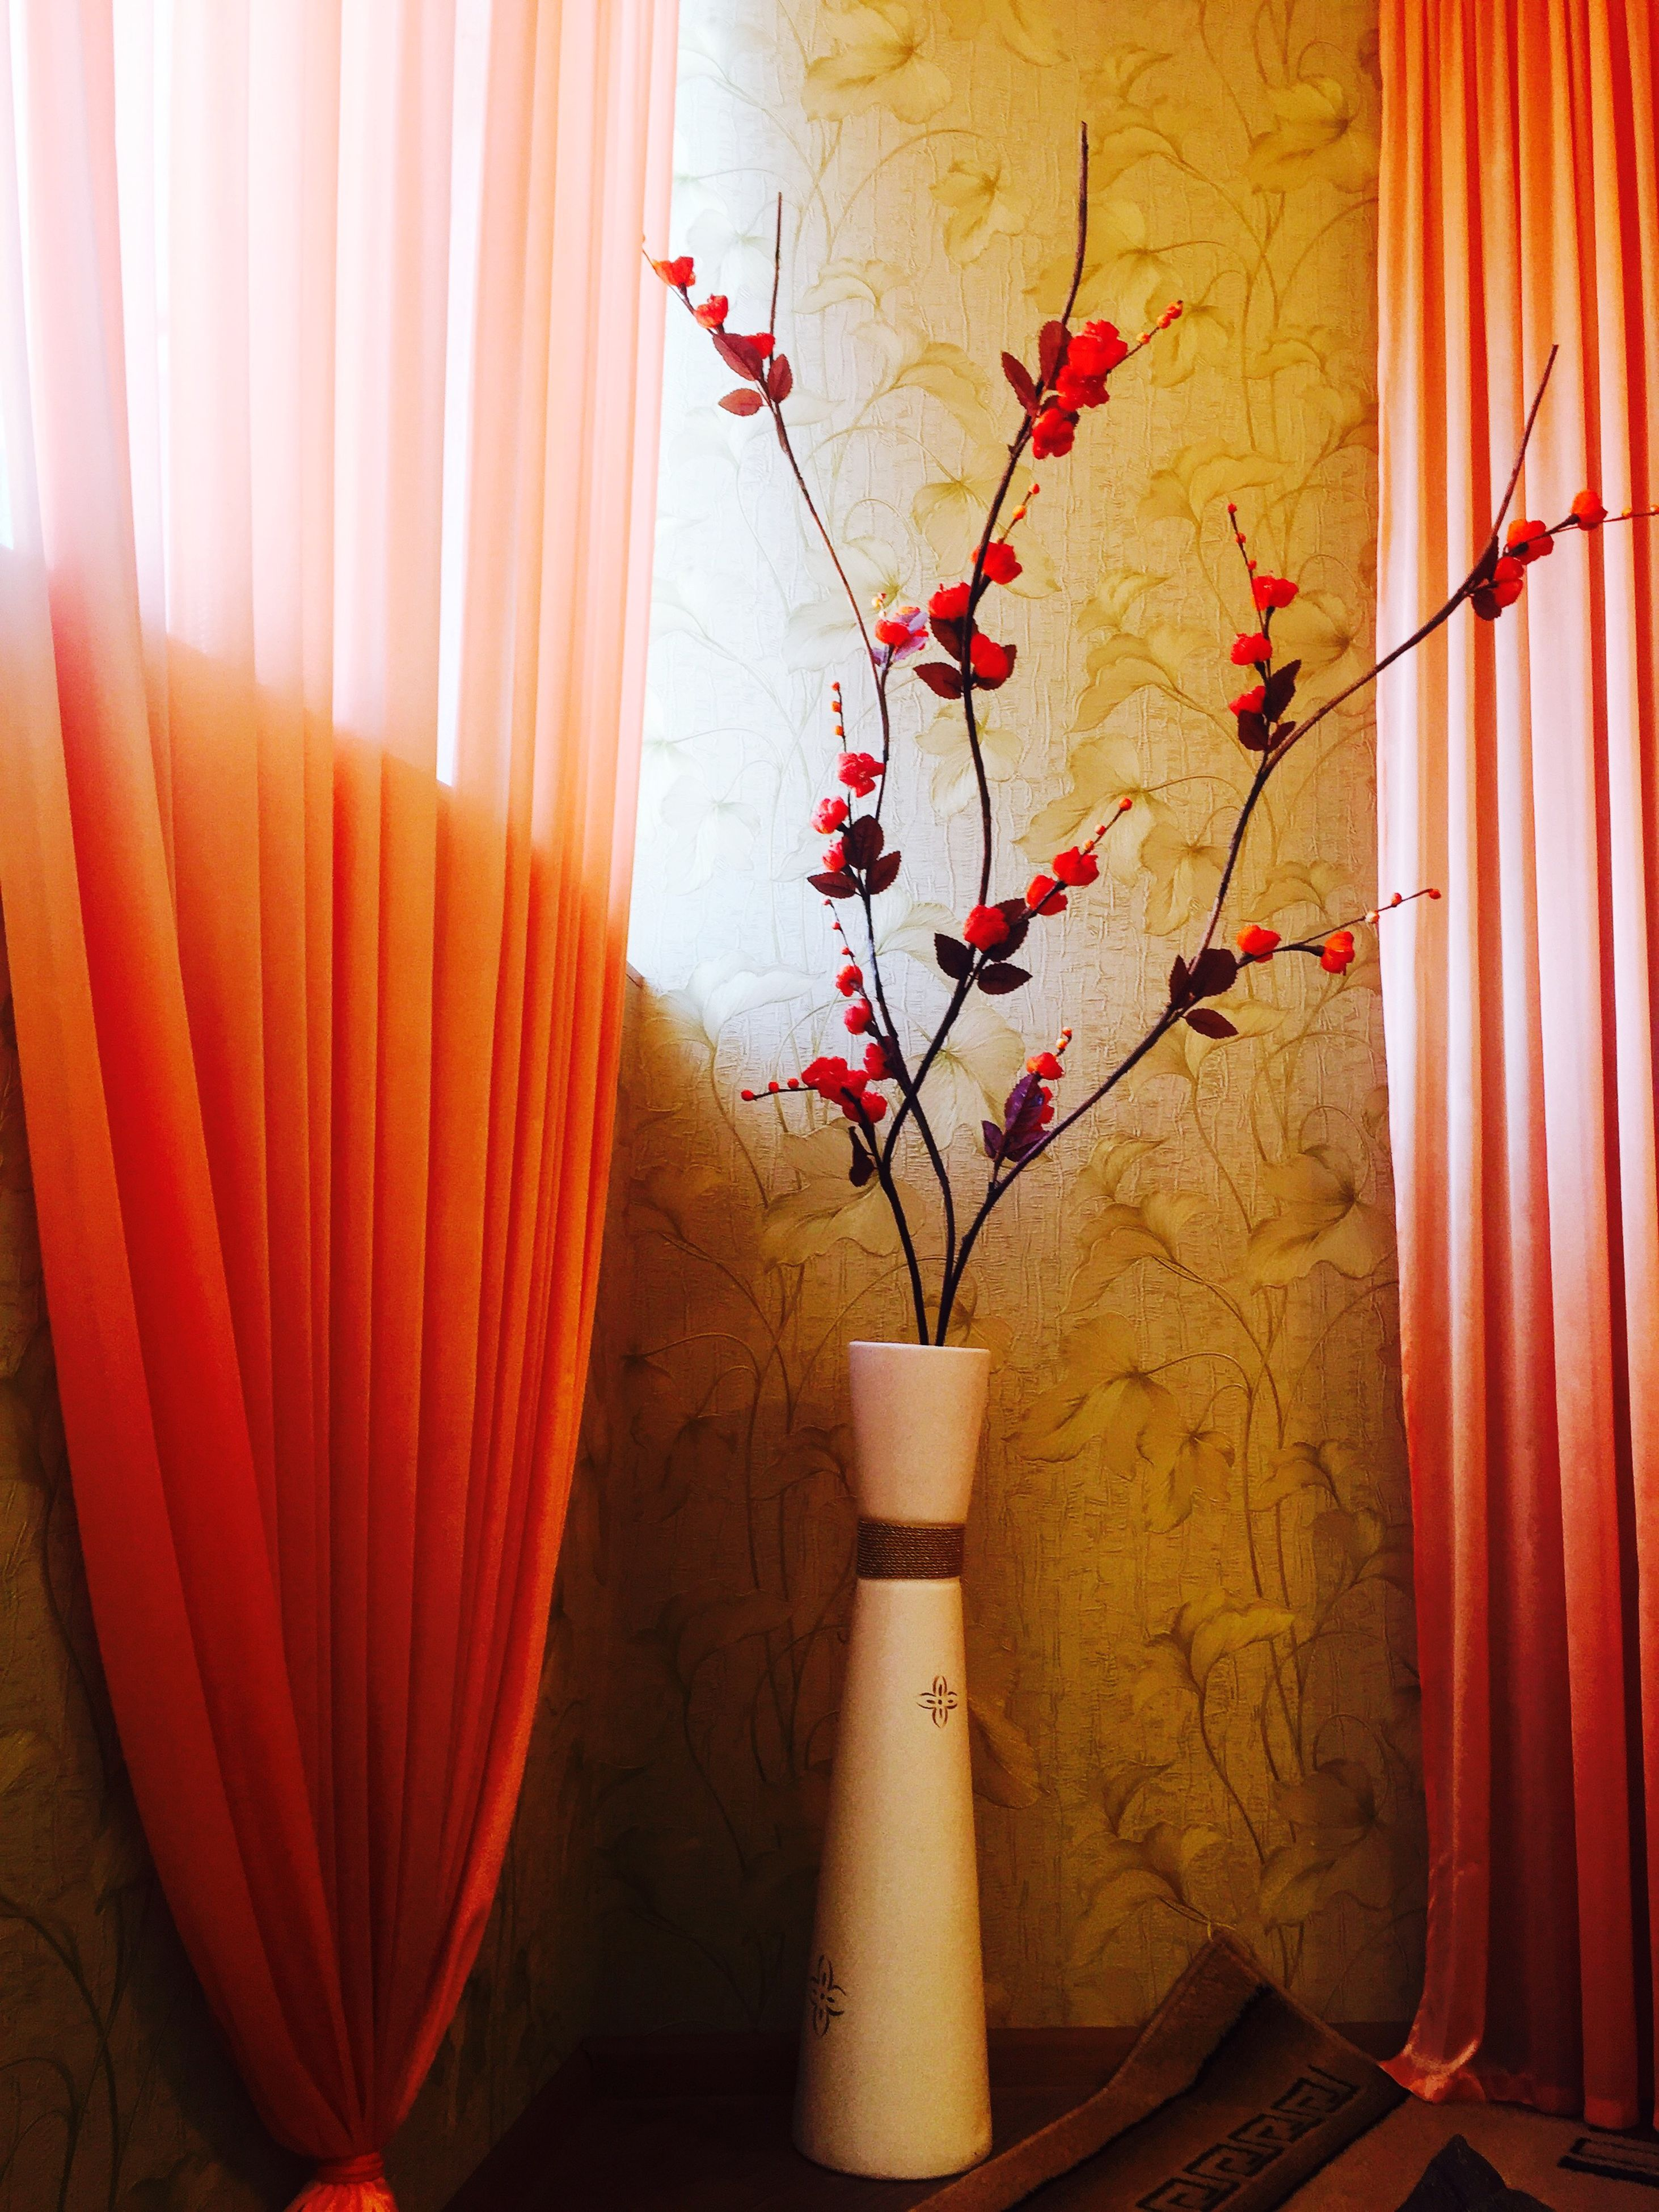 indoors, flower, decoration, wall - building feature, hanging, red, wall, built structure, home interior, architecture, no people, potted plant, house, vase, plant, curtain, day, wood - material, growth, close-up